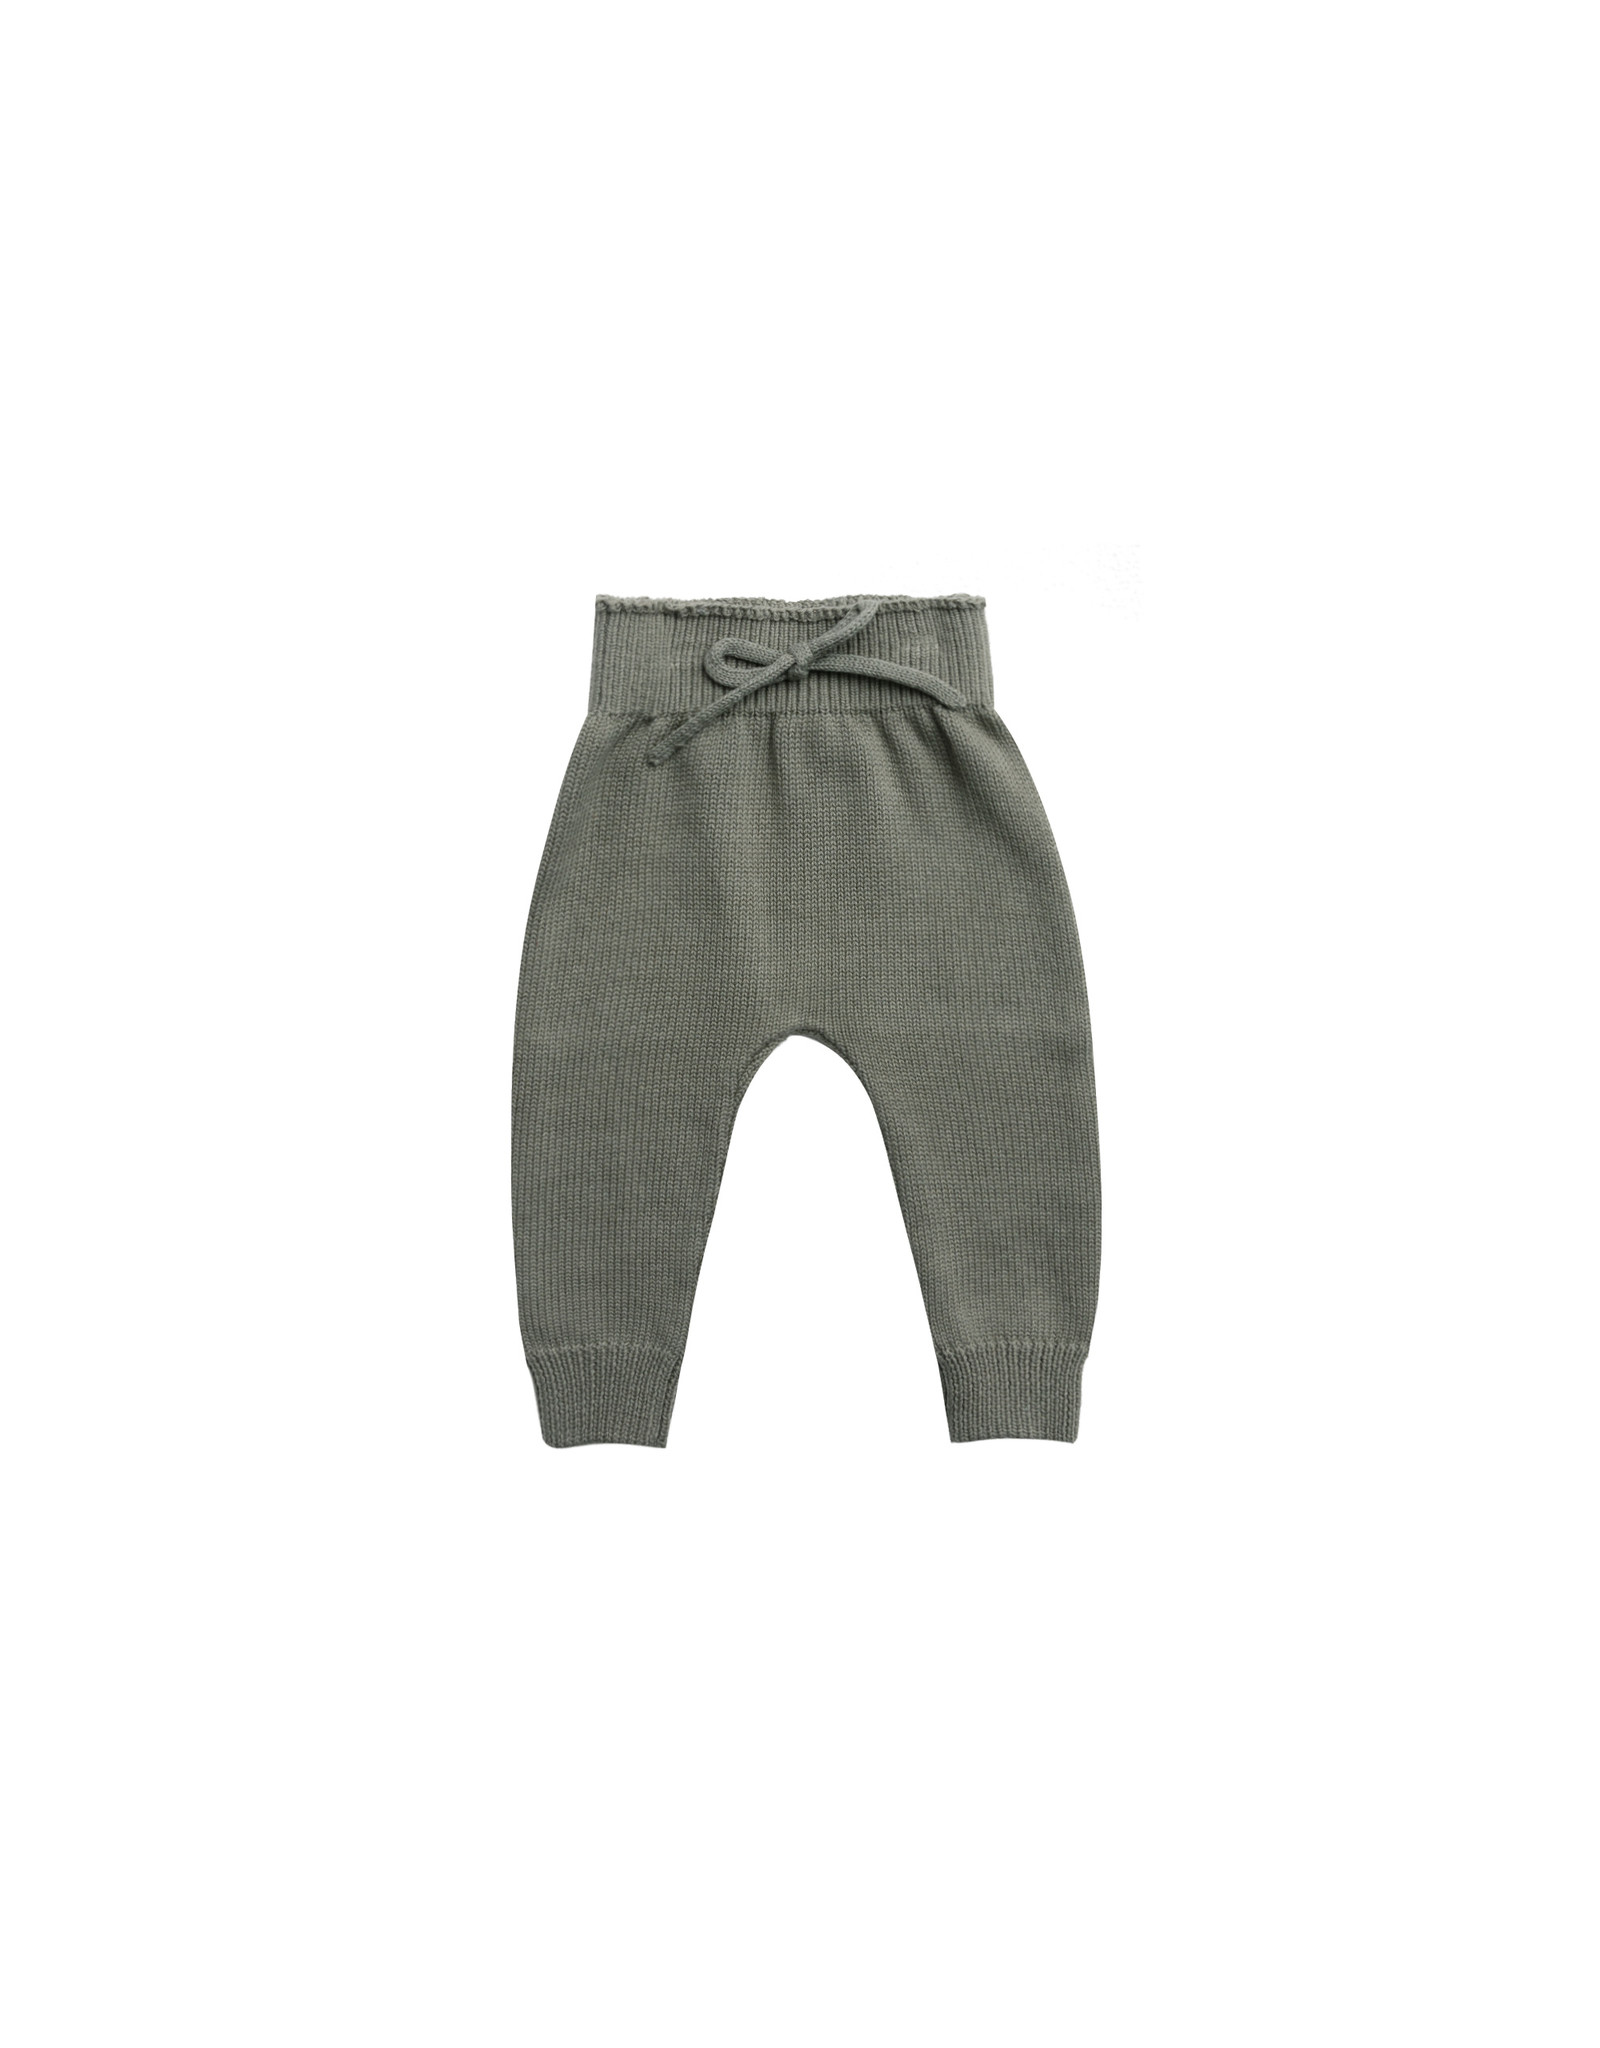 Quincy Mae Knit Pant